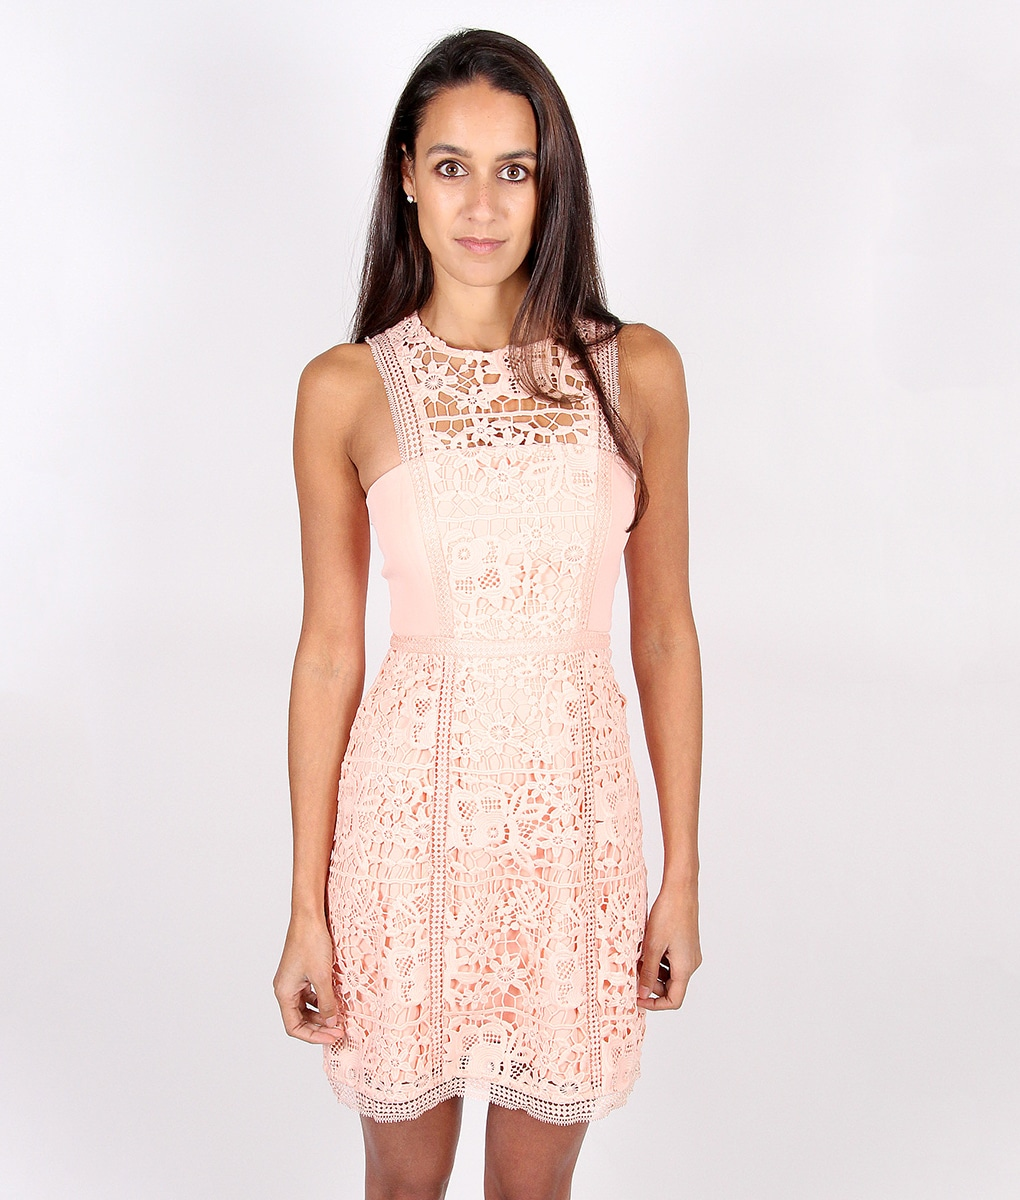 Alila-Peach-Lace-Dress-for-wedding-by-Lumier-by-Bariano